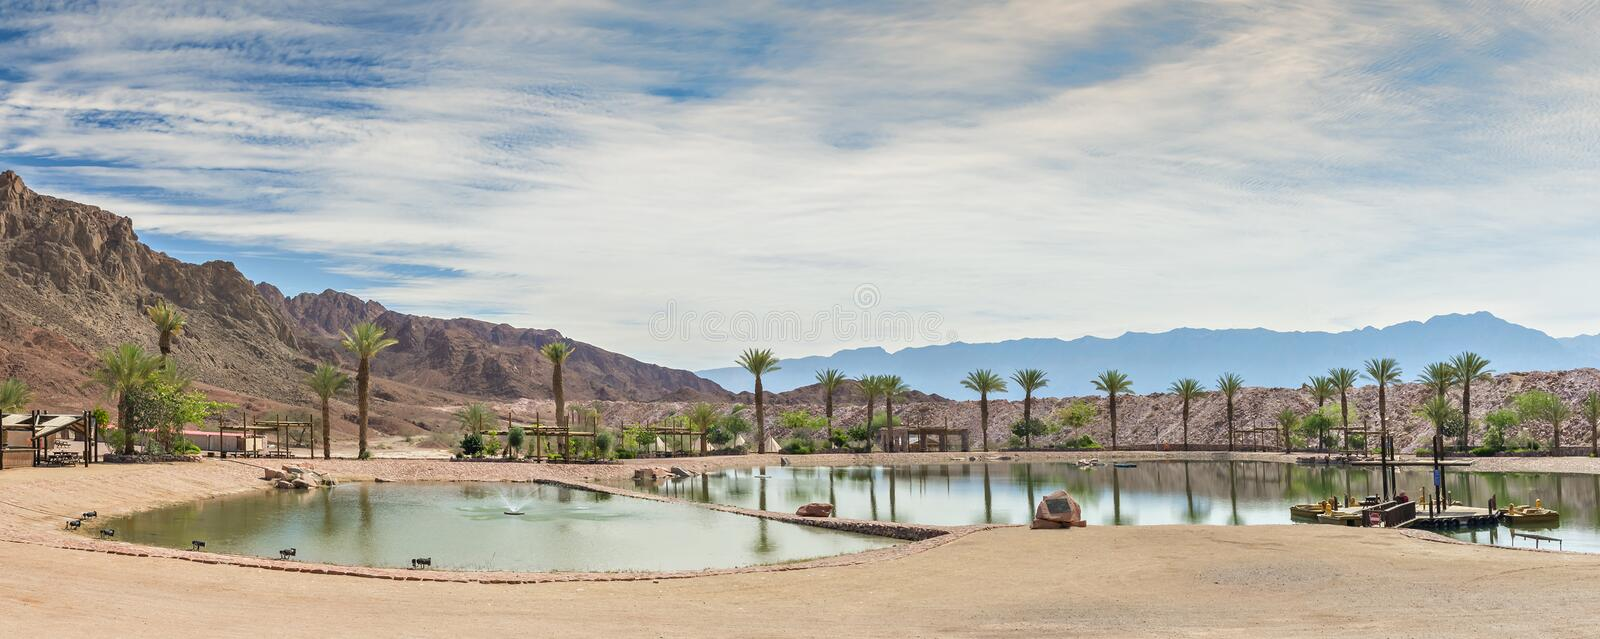 Artificial lake in geological desert Timna park. National Timna Park, located 25 km north of Eilat, combines beautiful scenery with special antiquities, history royalty free stock photos